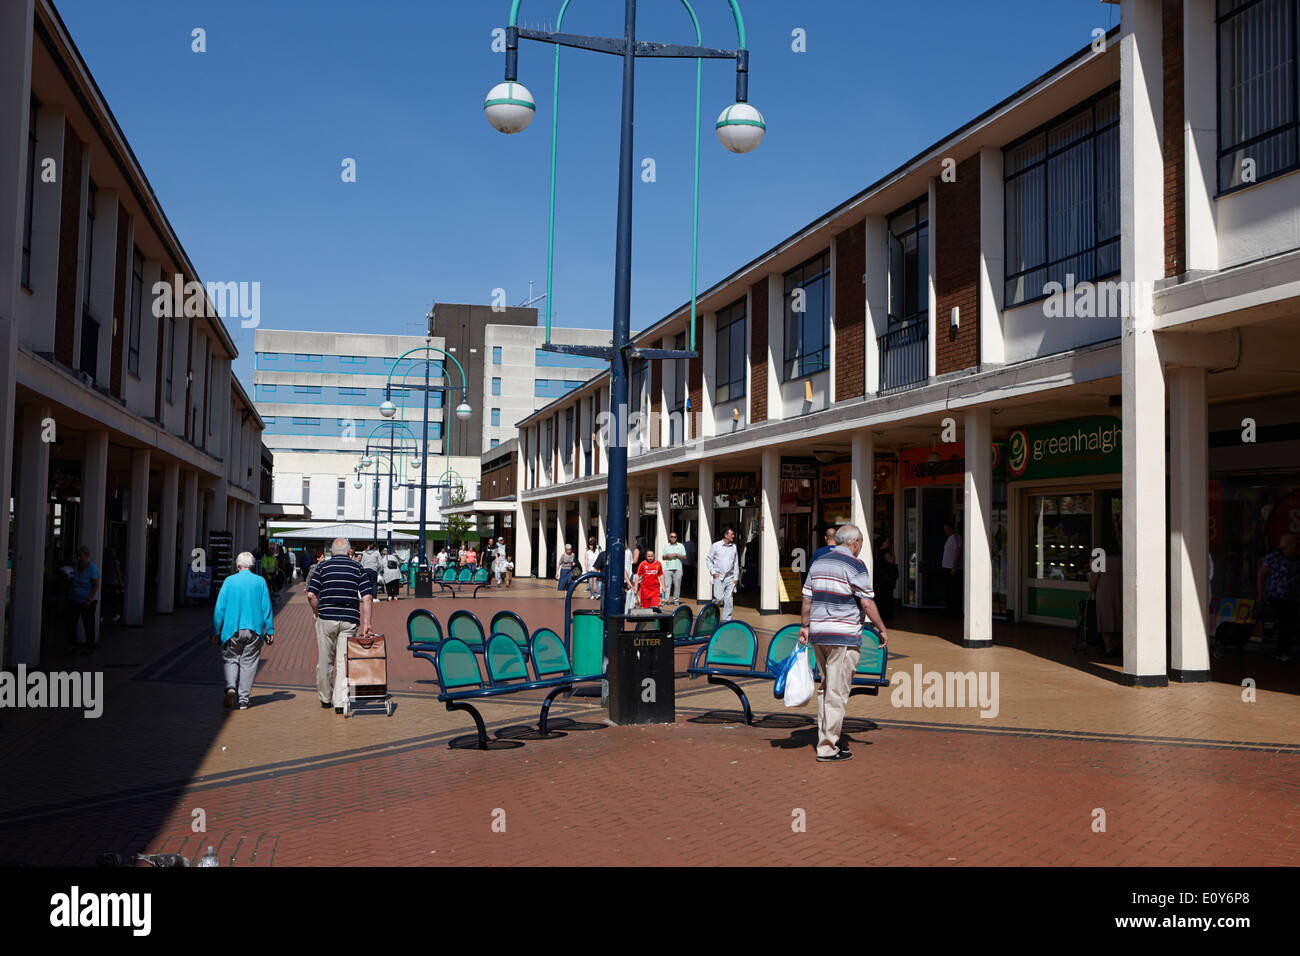 Kirkby town centre 1960s town planning Merseyside England UK - Stock Image